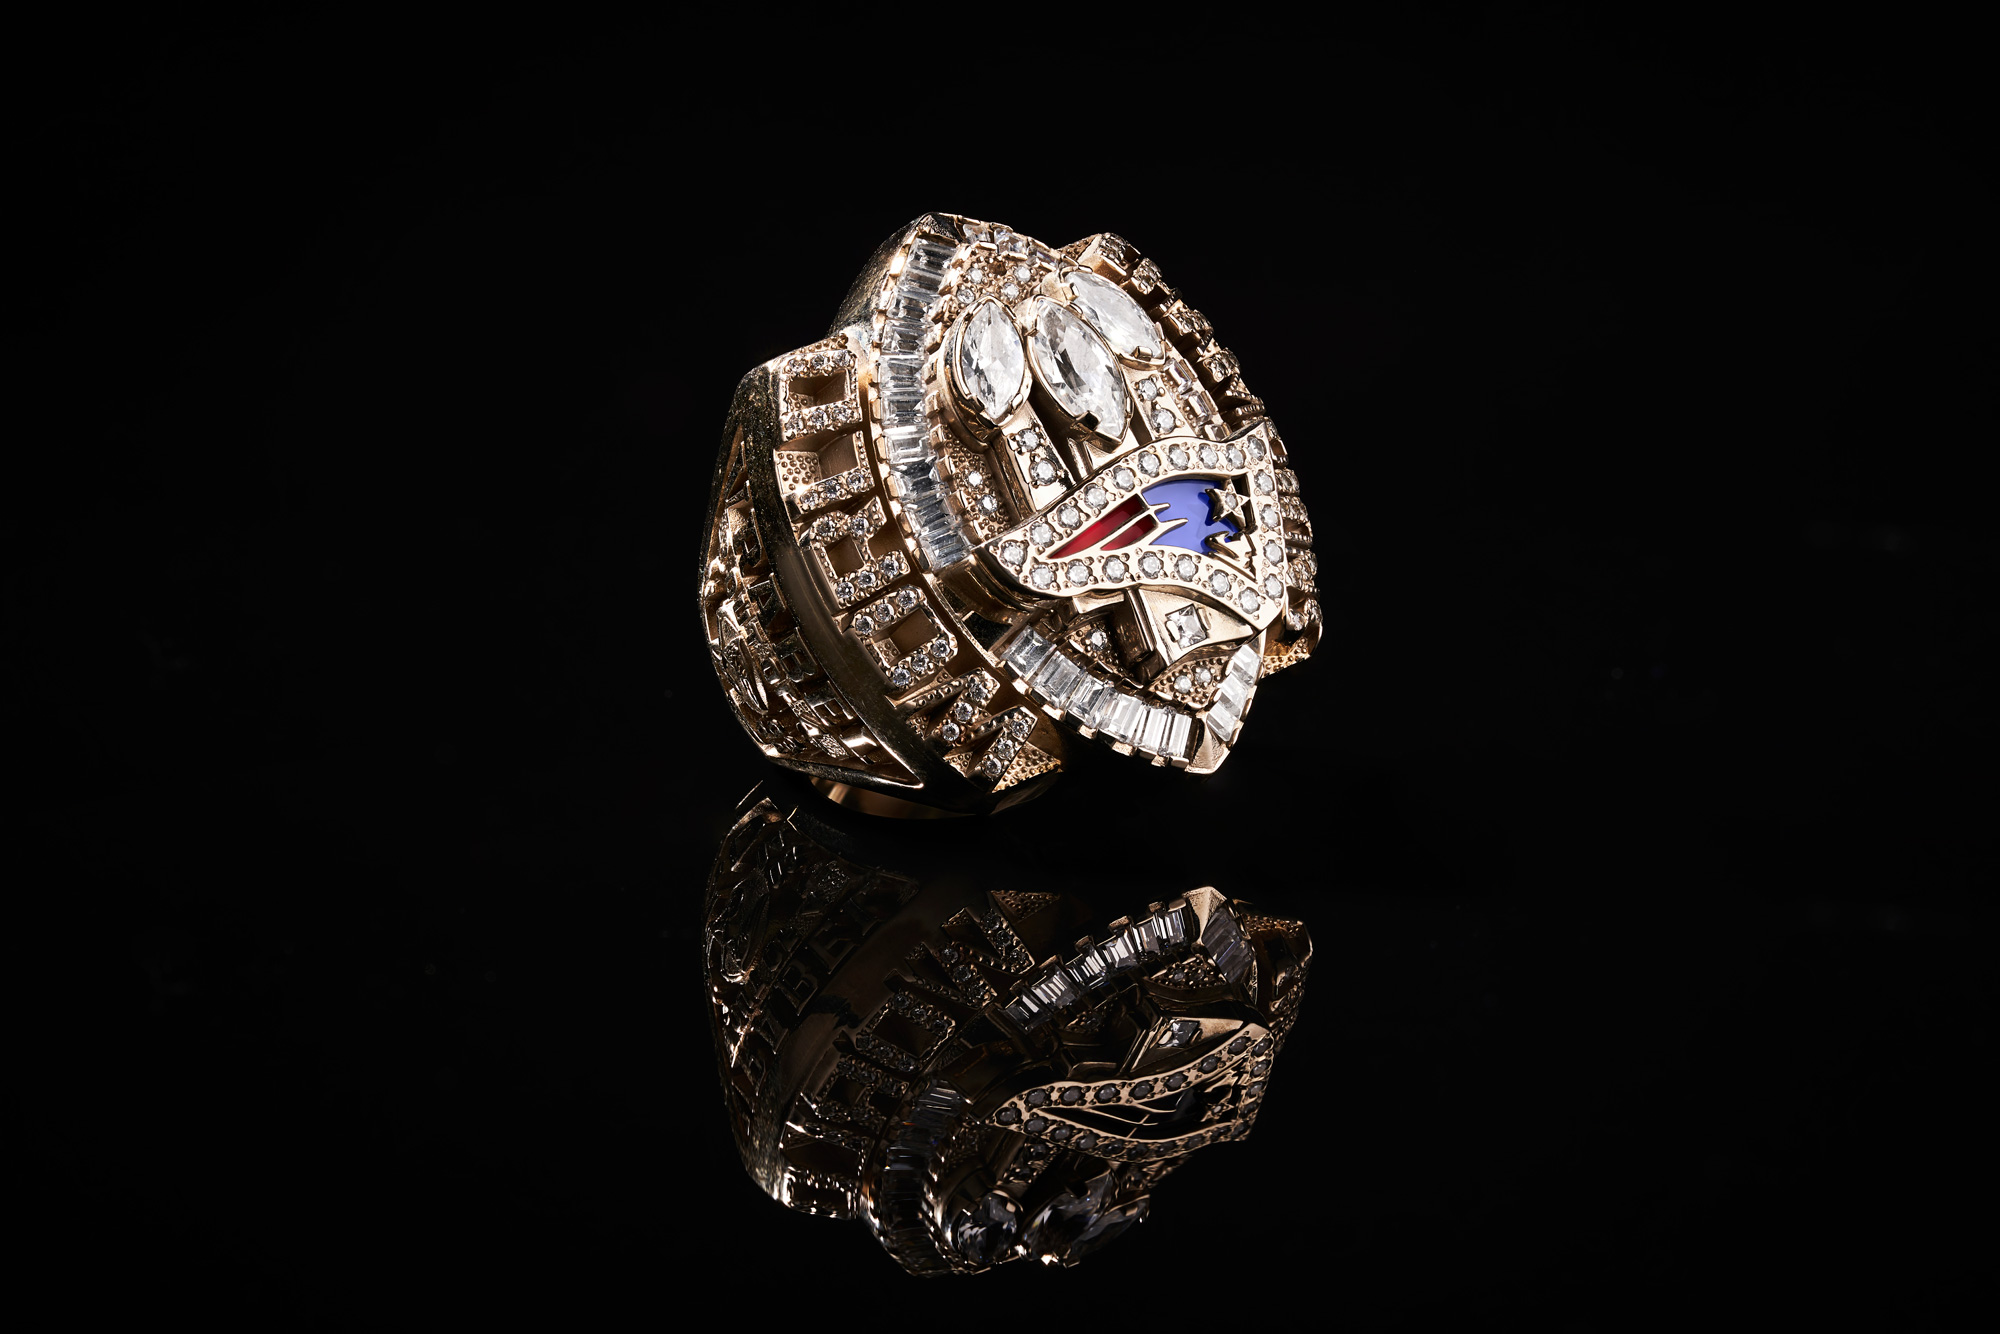 Product-Photograph-of-Super-Bowl-Rings-by-Architectural,-Interior,-and-Product-Photographer-Nick-McGinn-8.web.jpg